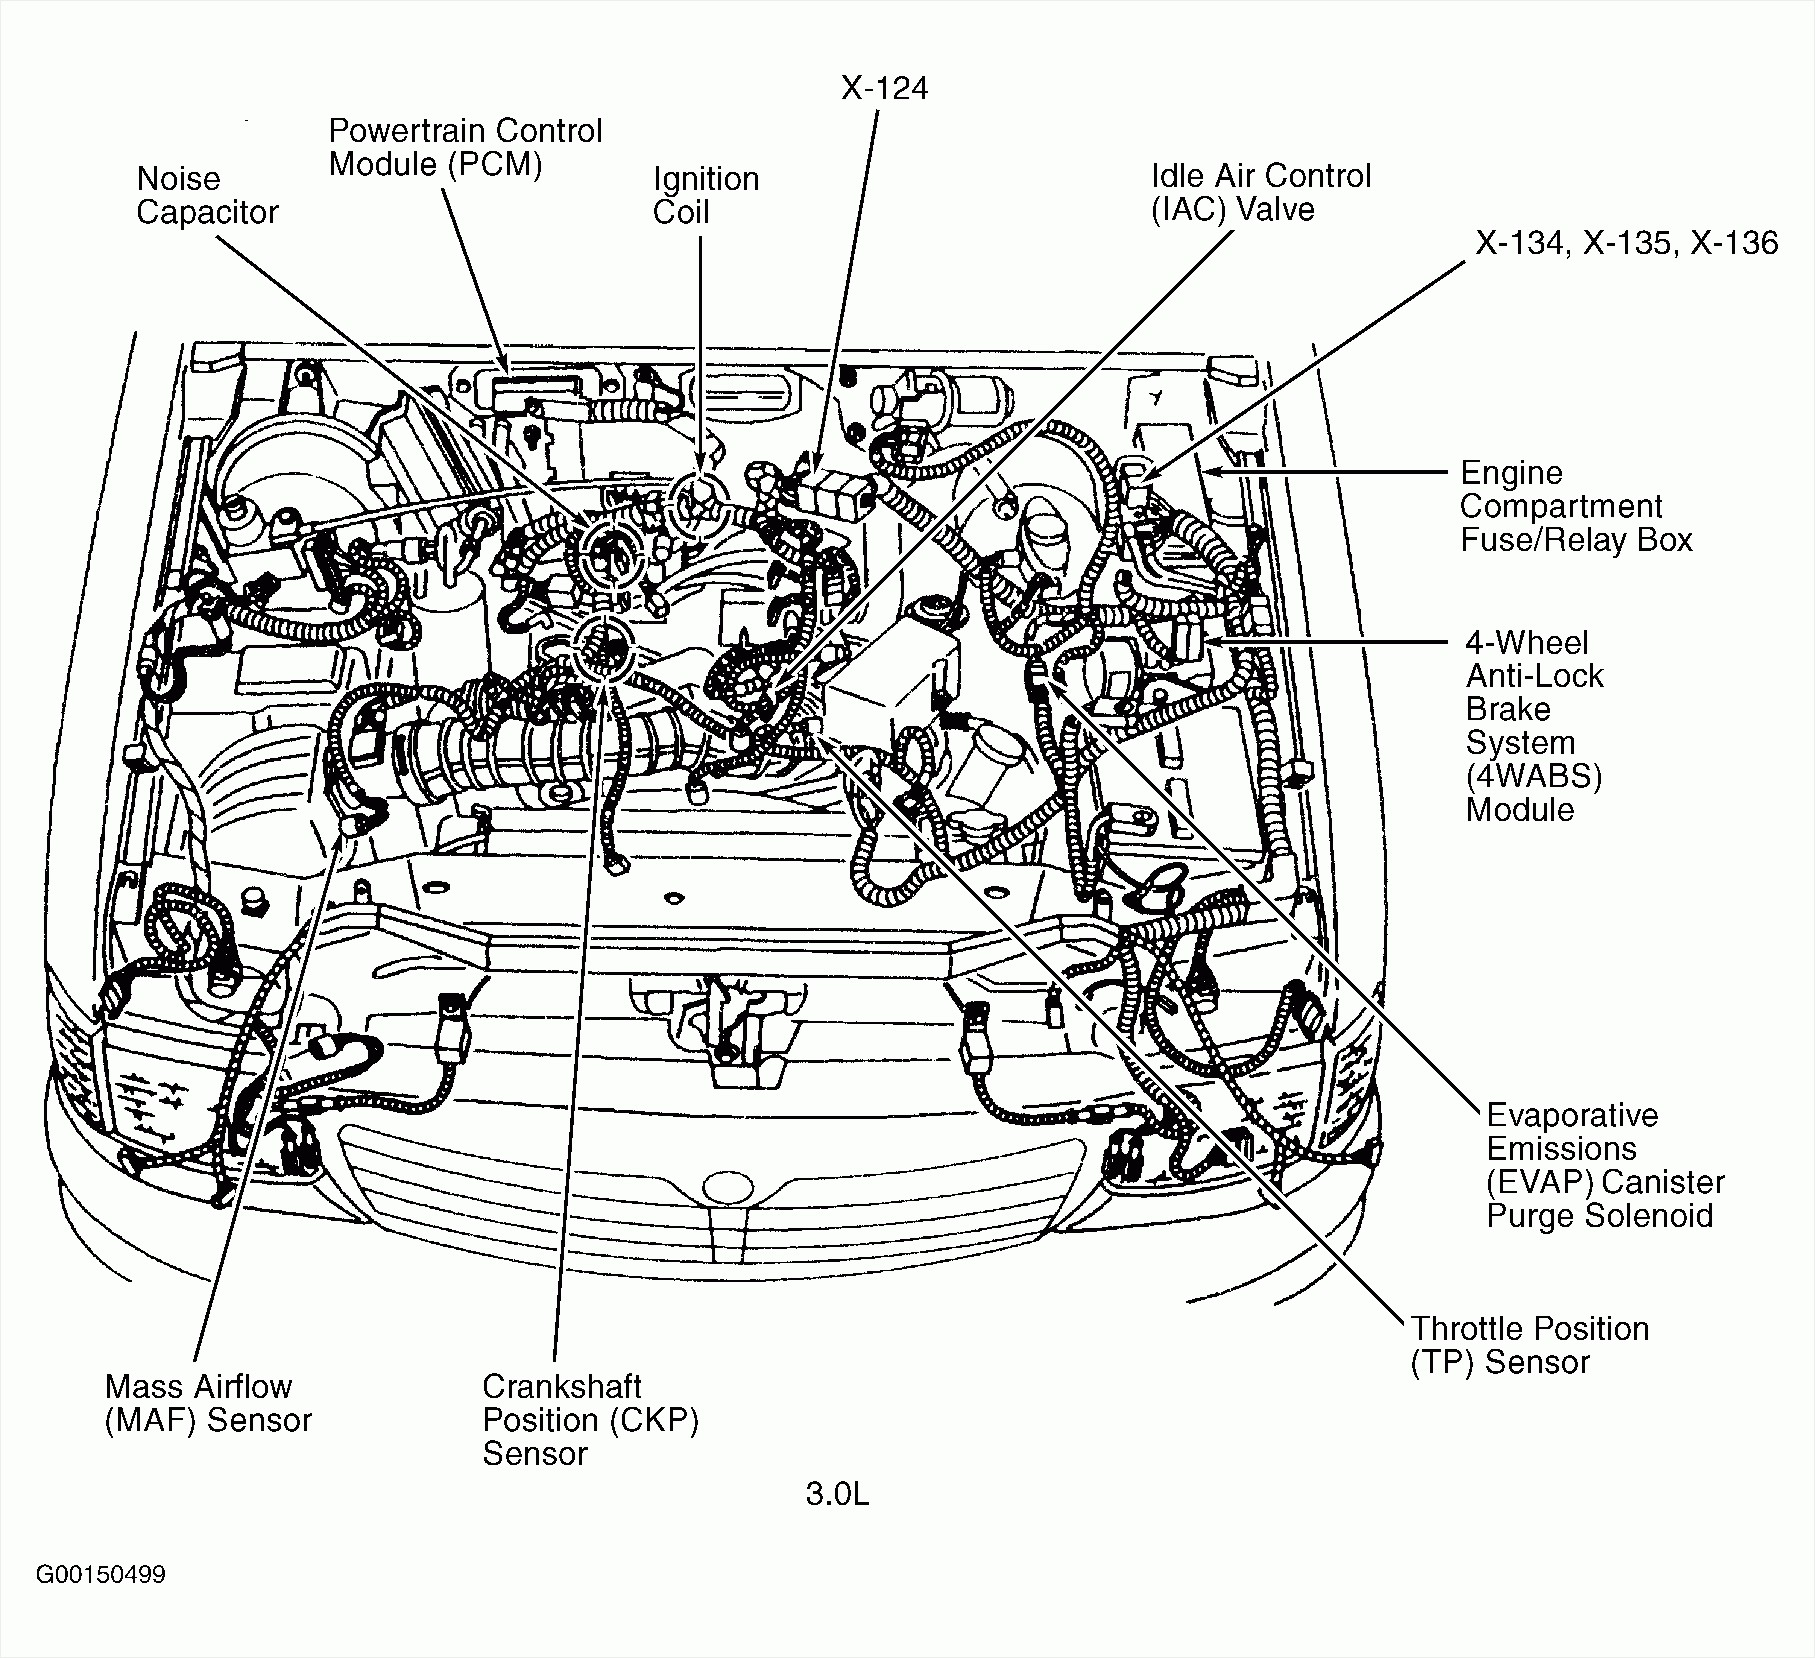 1996 mercury sable engine diagram